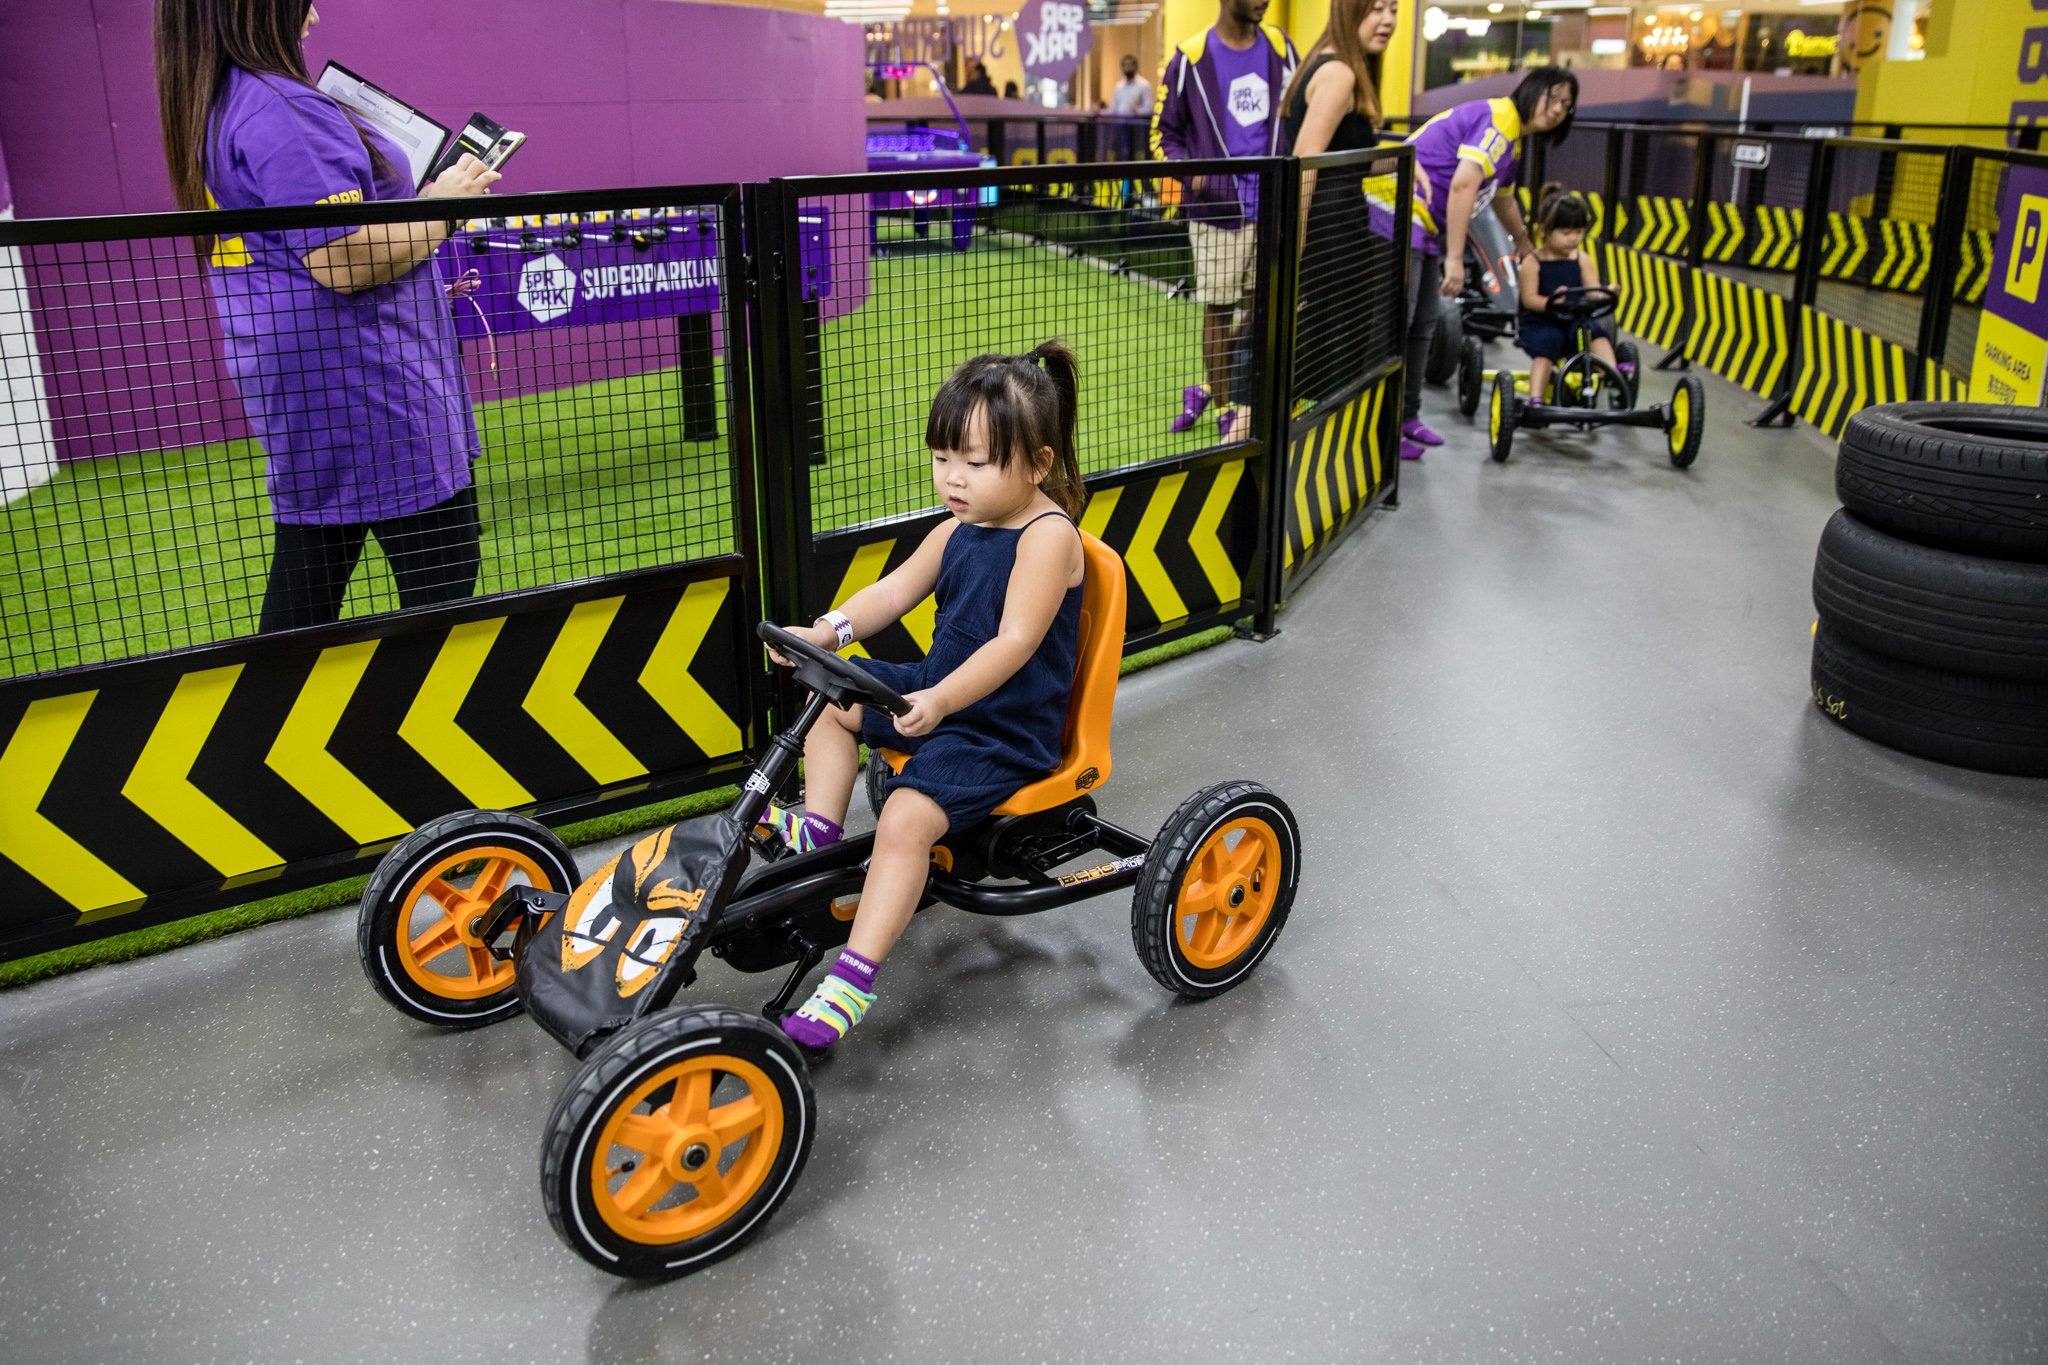 Race round the track with designated pedal cars for both adults and kids.